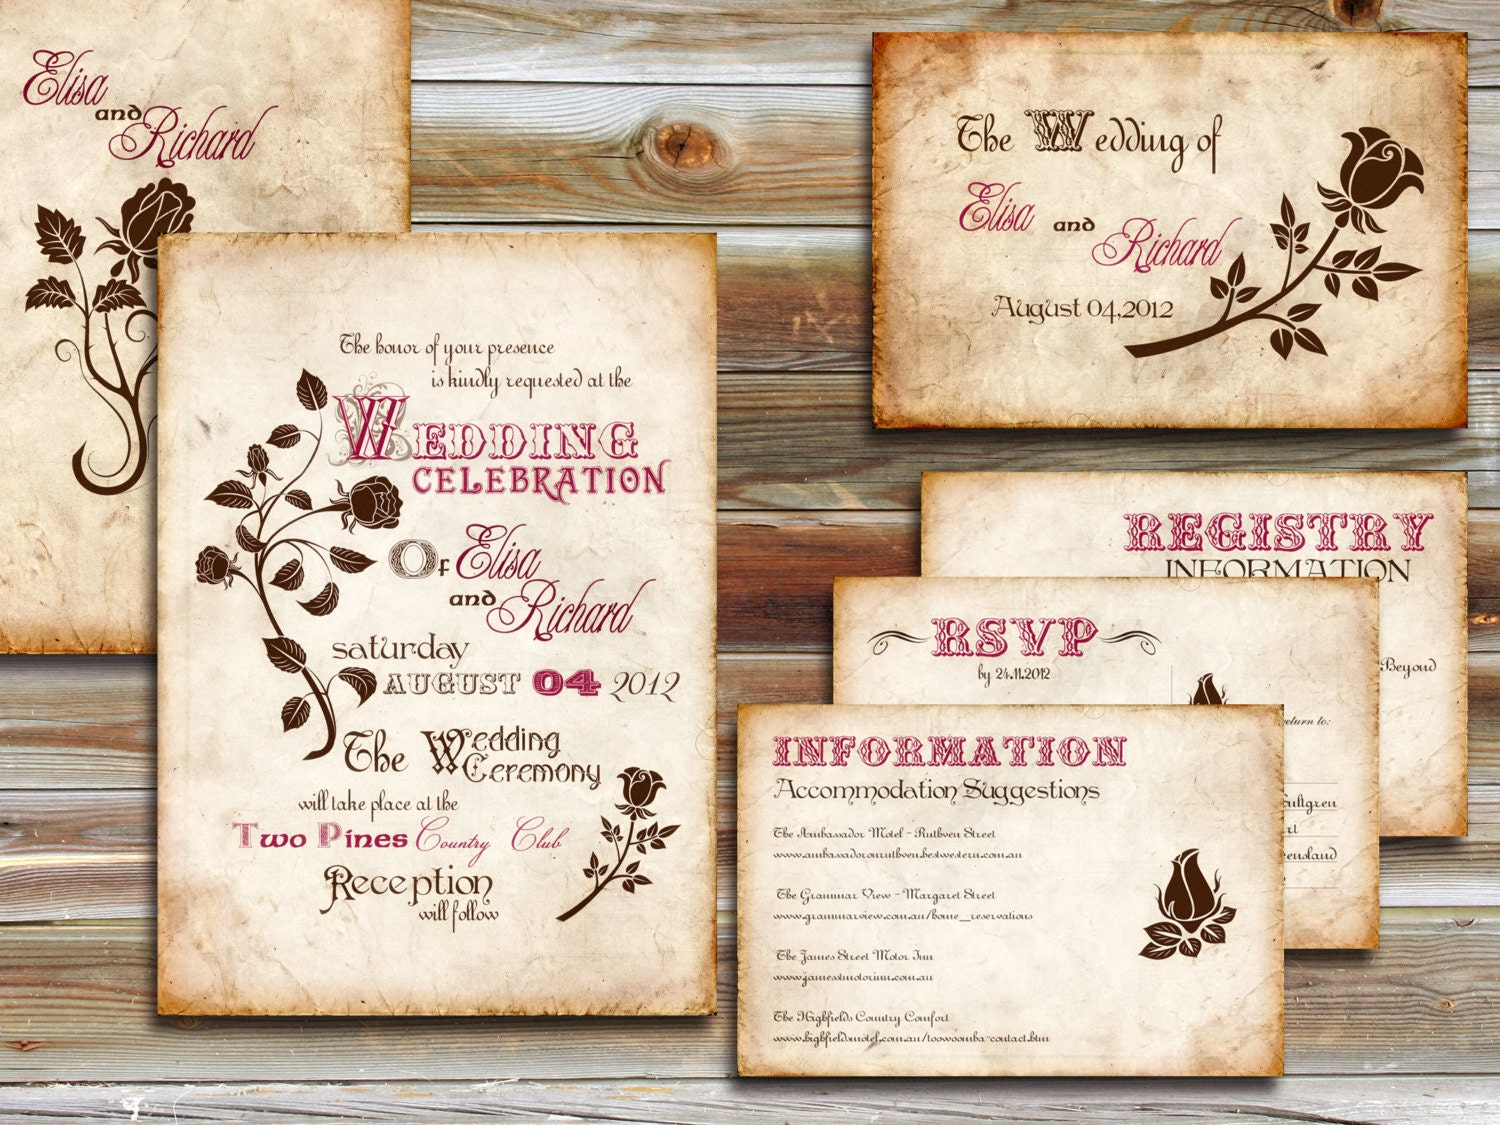 michaels do it yourself wedding invitations michaels wedding invitations Blank Wedding Invitation Kits Michaels Word Templates For Baby